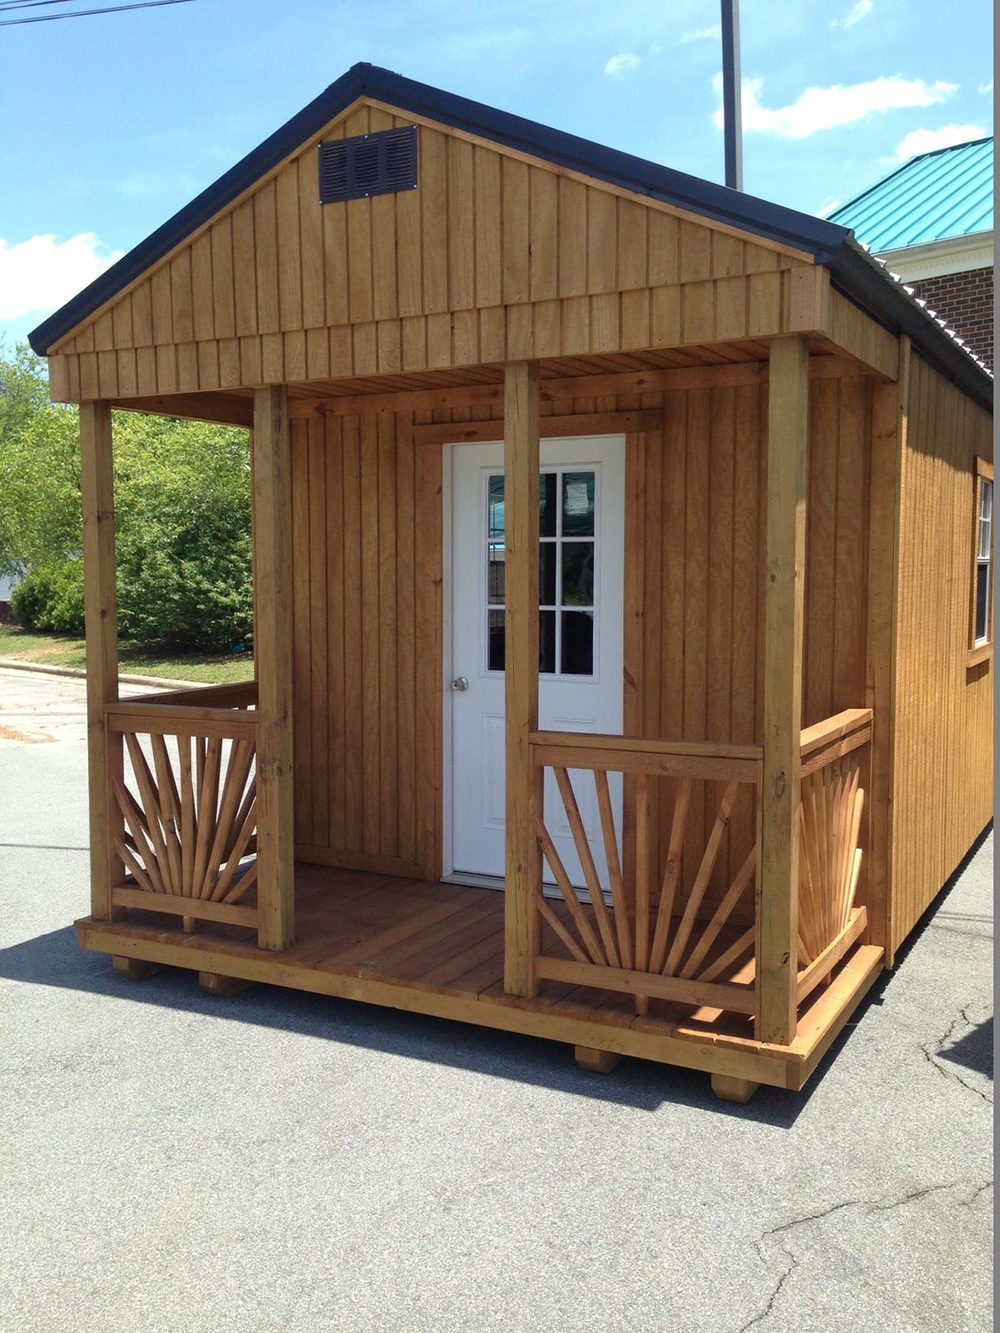 Treated Wood Shed with Porch